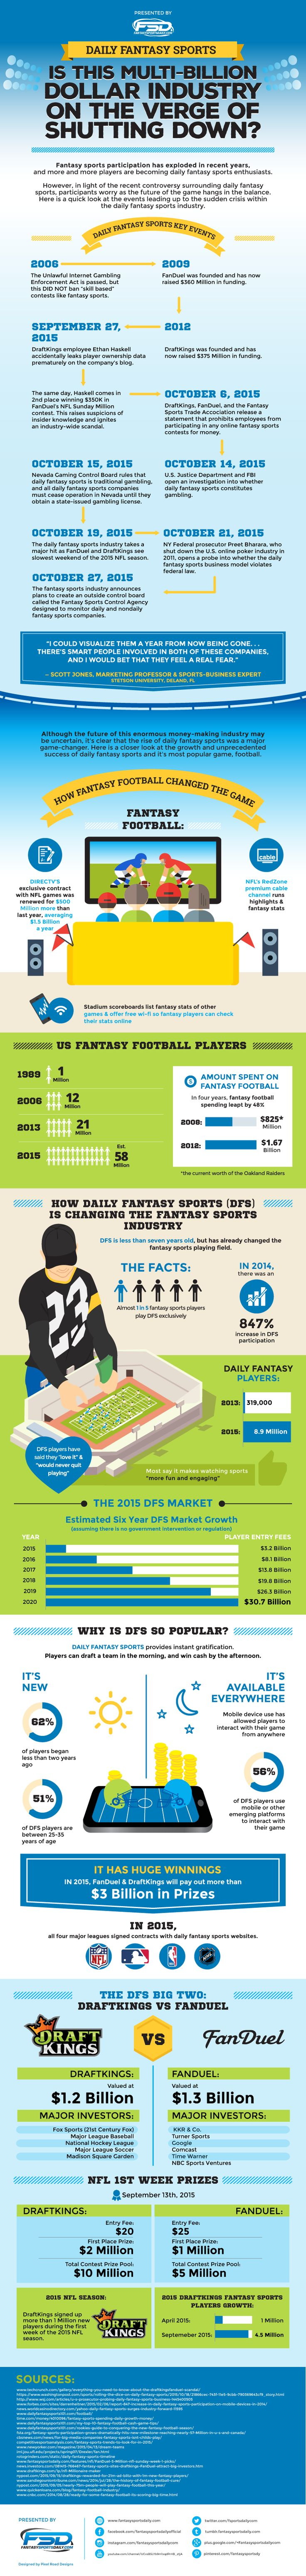 Are you a Daily Fantasy Sports enthusiast? Check out this awesome ‪‎infographic‬ we've created for our friends at Fantasy Sports Daily.